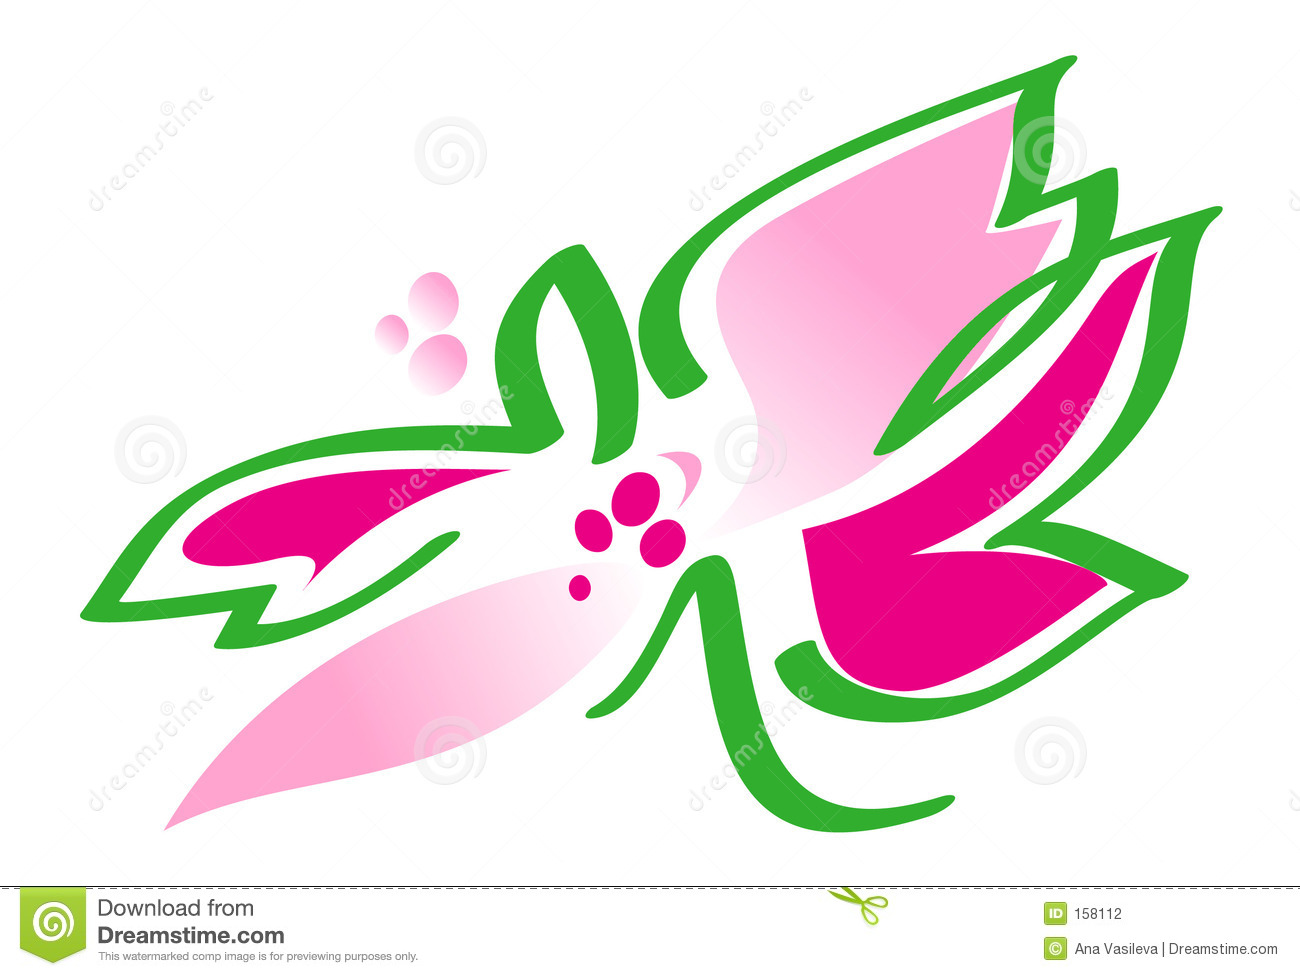 Flower in pink and green - illustration